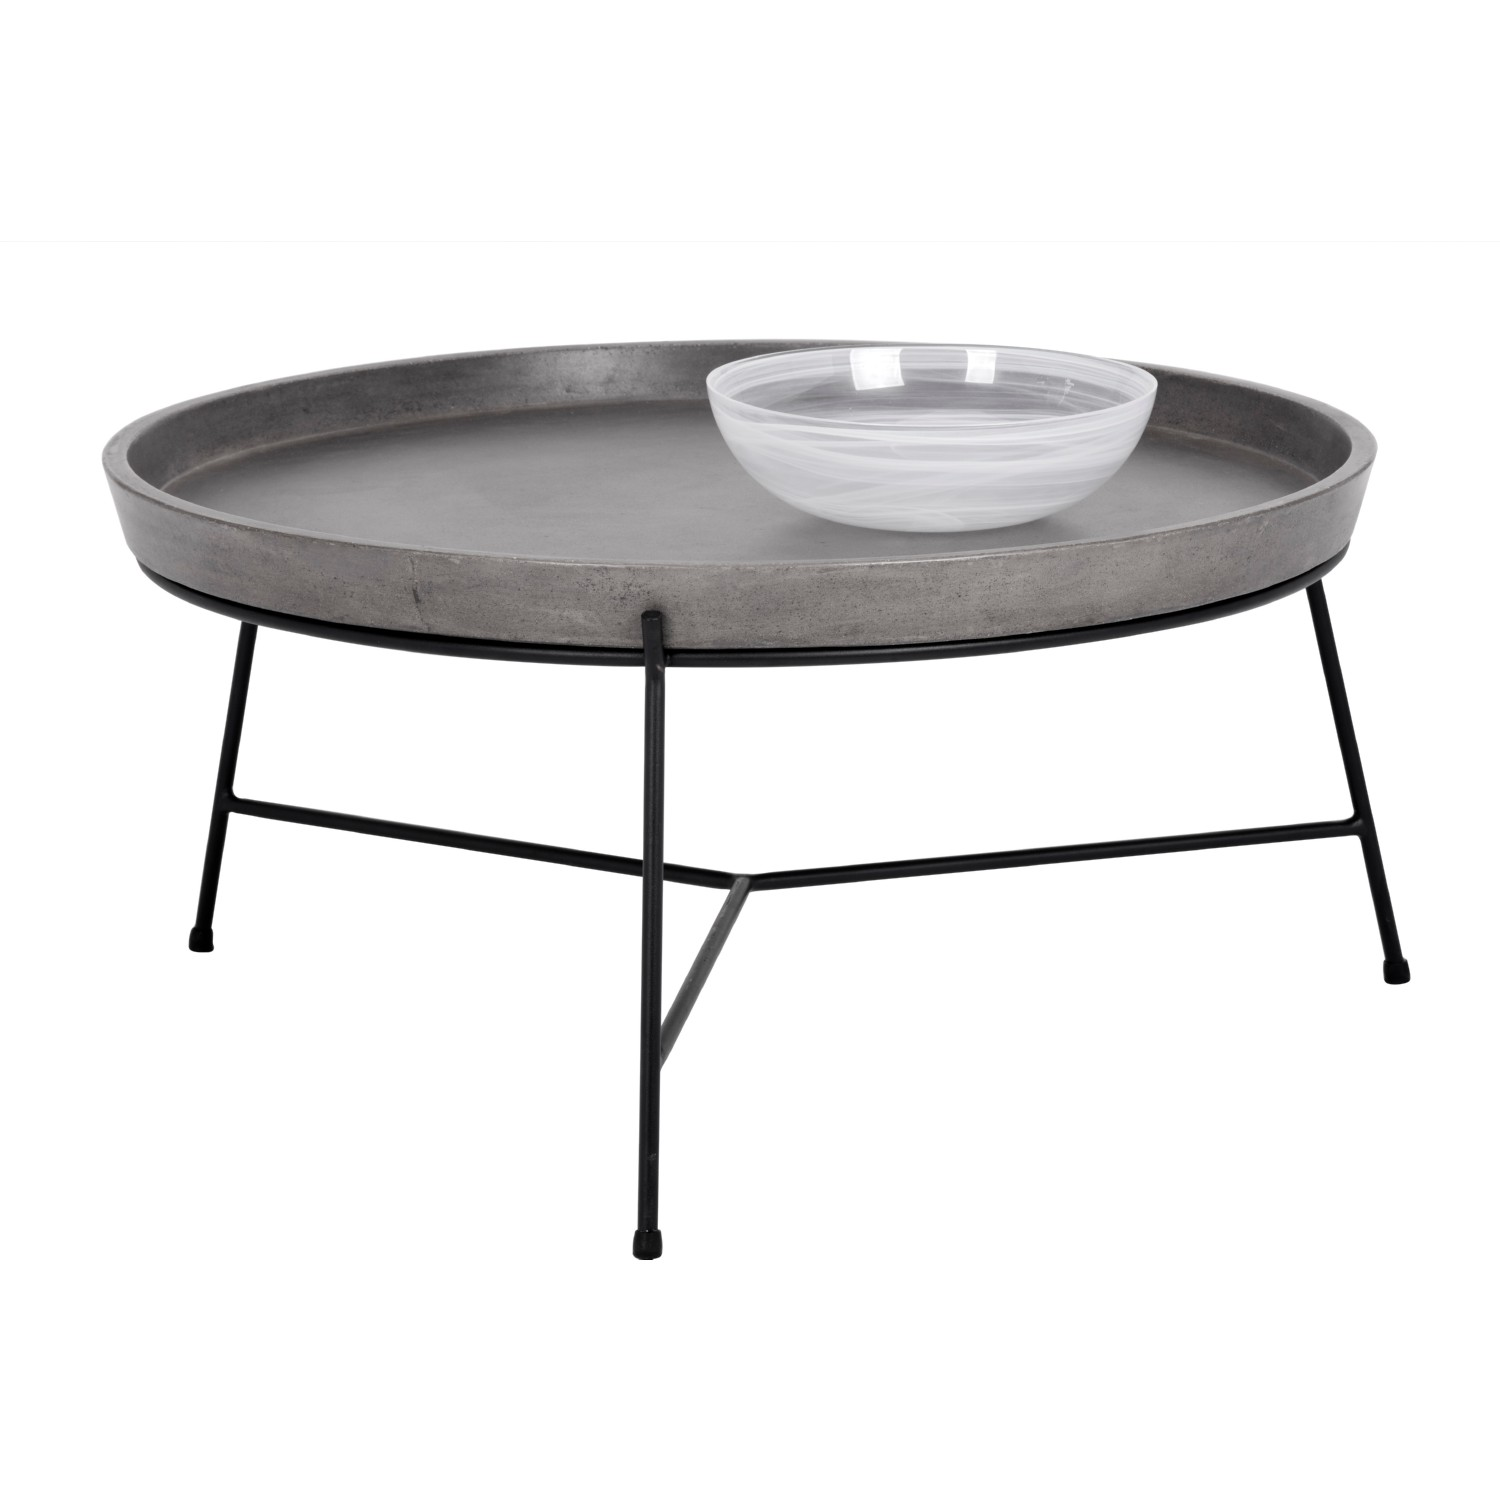 Sunpan Remy Coffee Table w Concrete Tray Like Top on Black